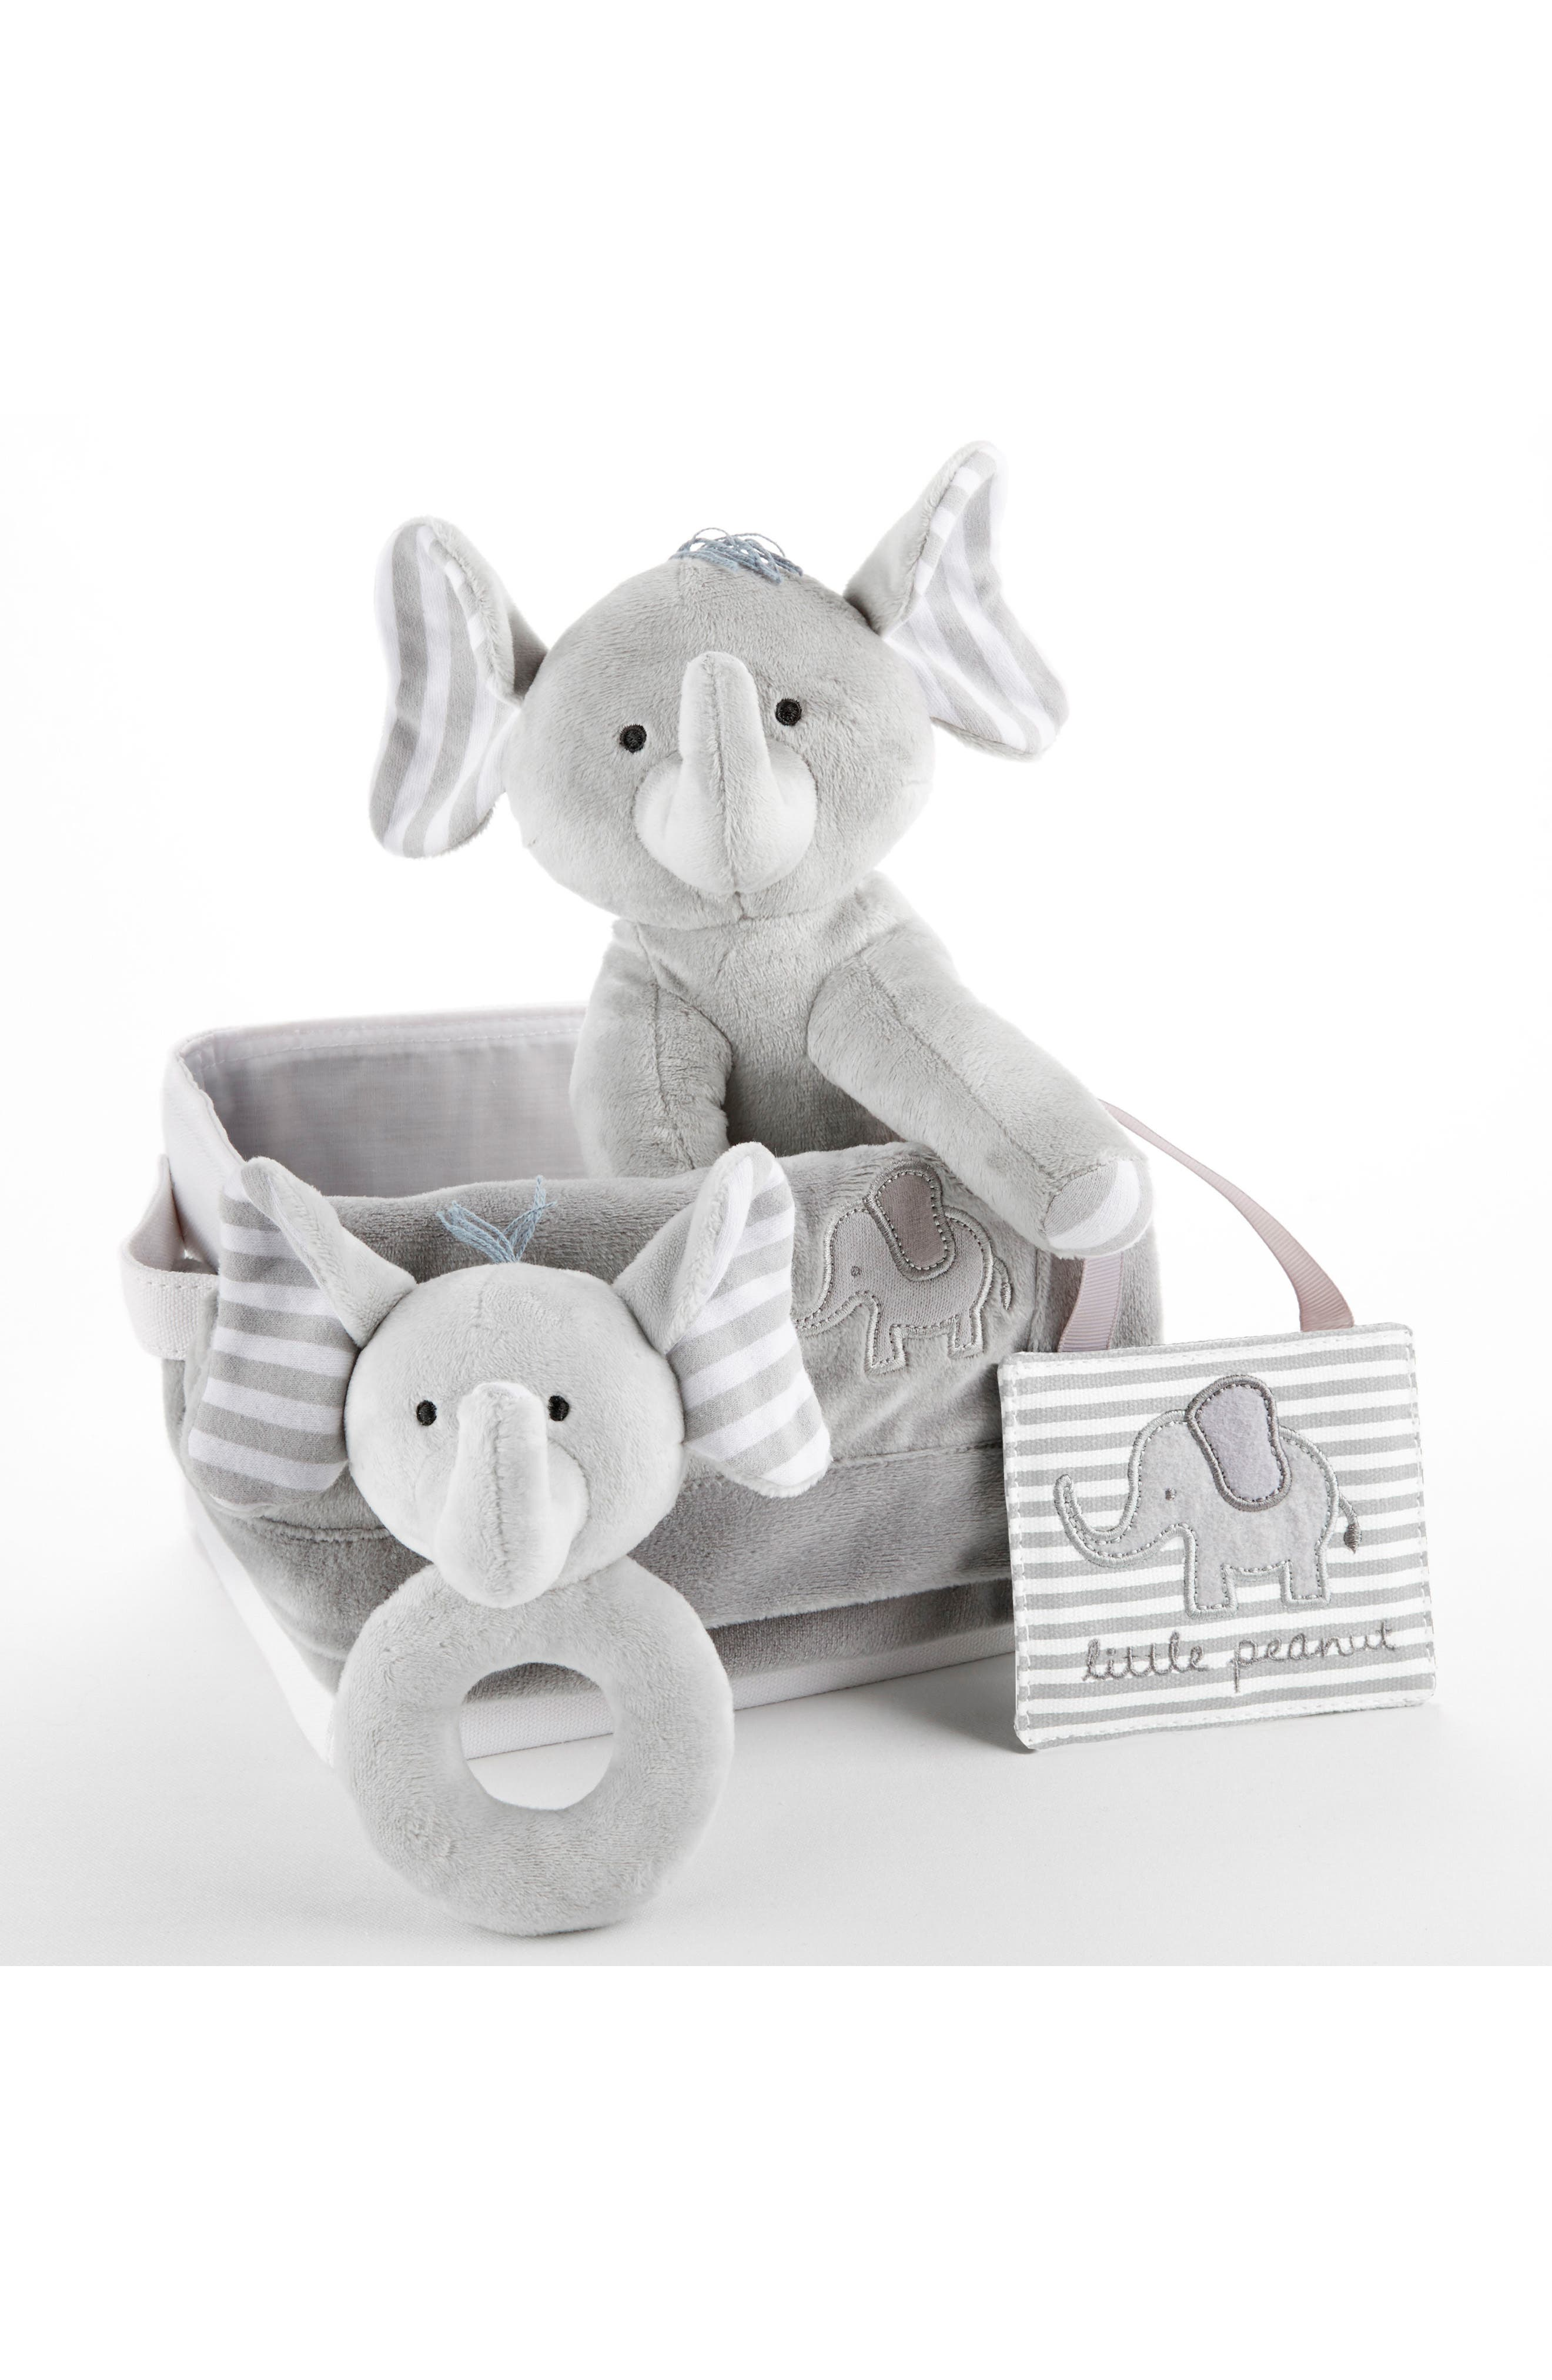 Little Peanut Elephant 5-Piece Gift Set,                             Alternate thumbnail 4, color,                             GREY AND WHITE